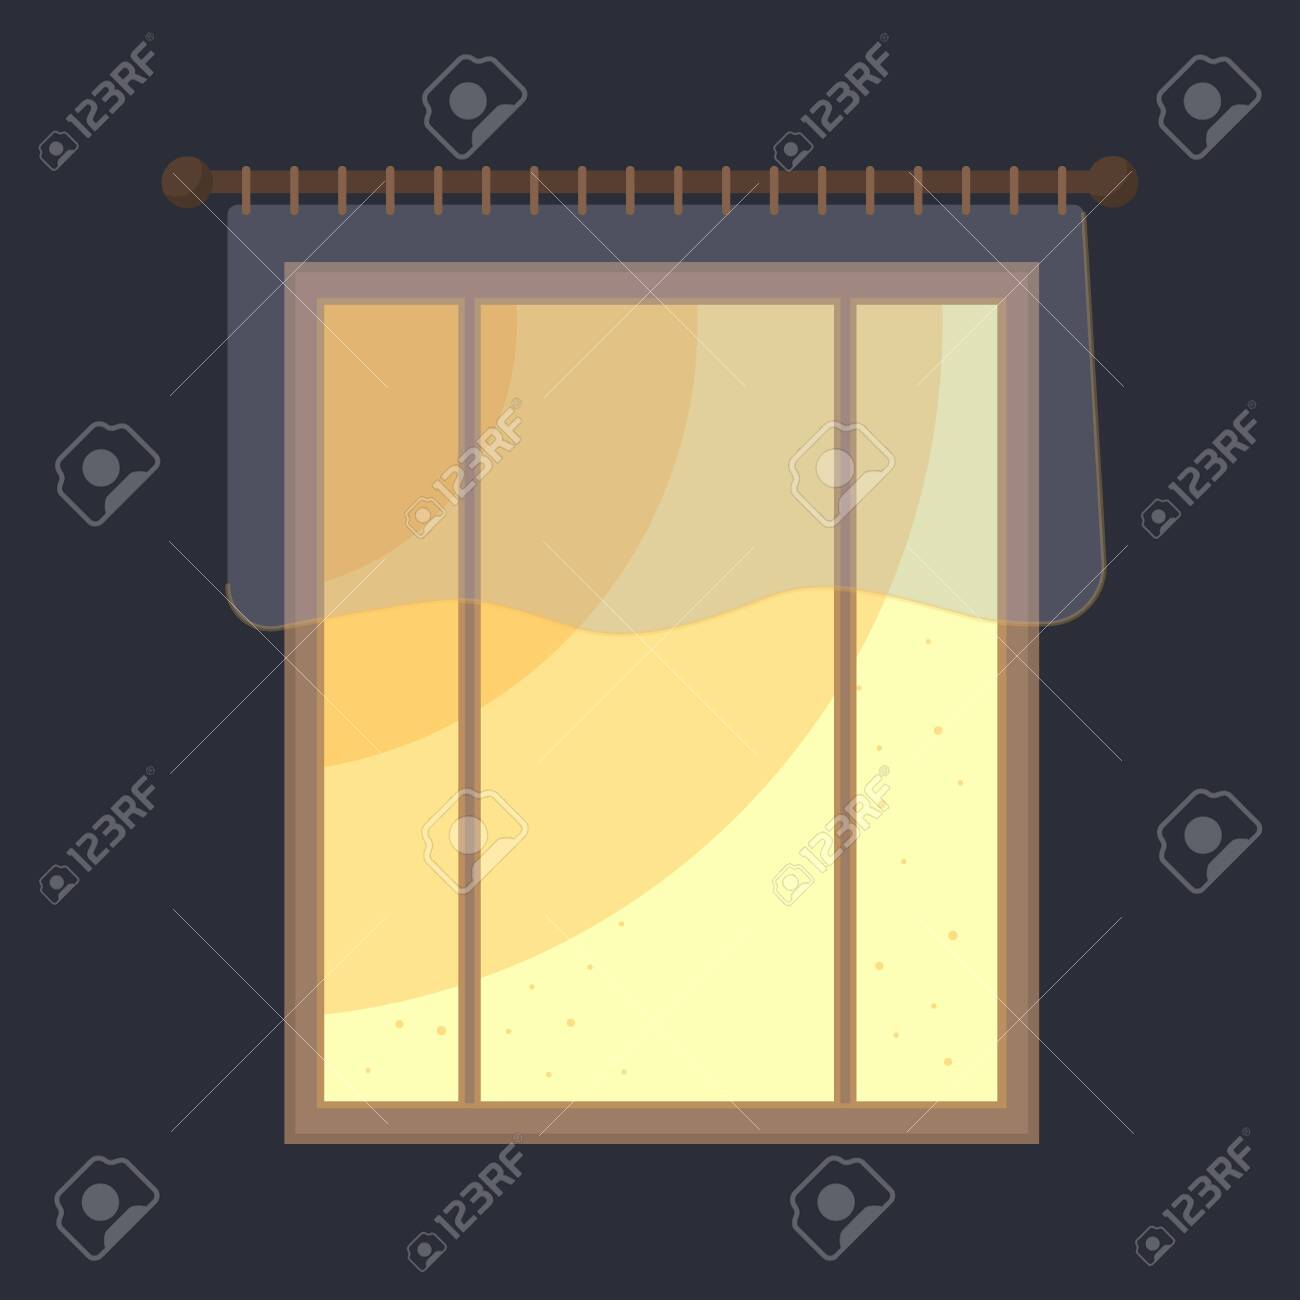 Vector Window With Short Sheer Curtains The Room Is Dark Only Royalty Free Cliparts Vectors And Stock Illustration Image 134957955